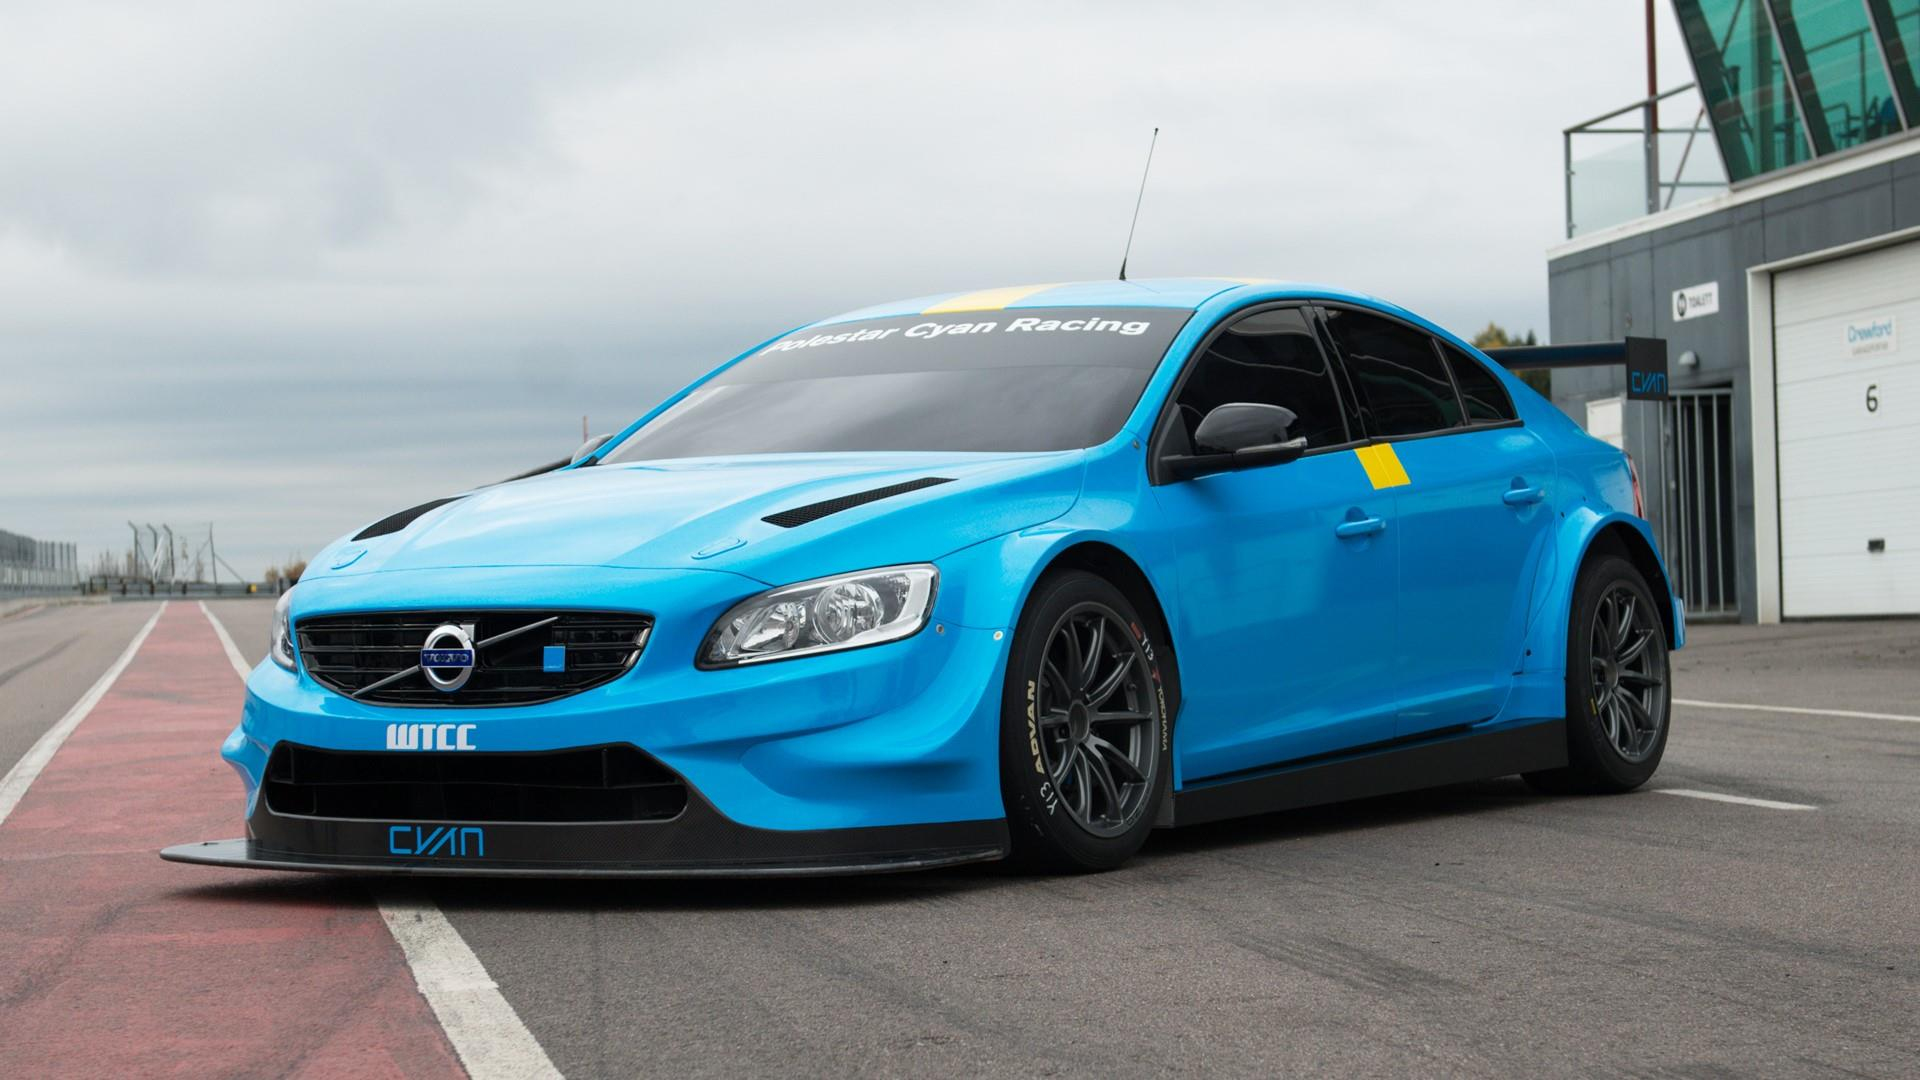 2016 volvo s60 polestar tc1 news and information research and history. Black Bedroom Furniture Sets. Home Design Ideas